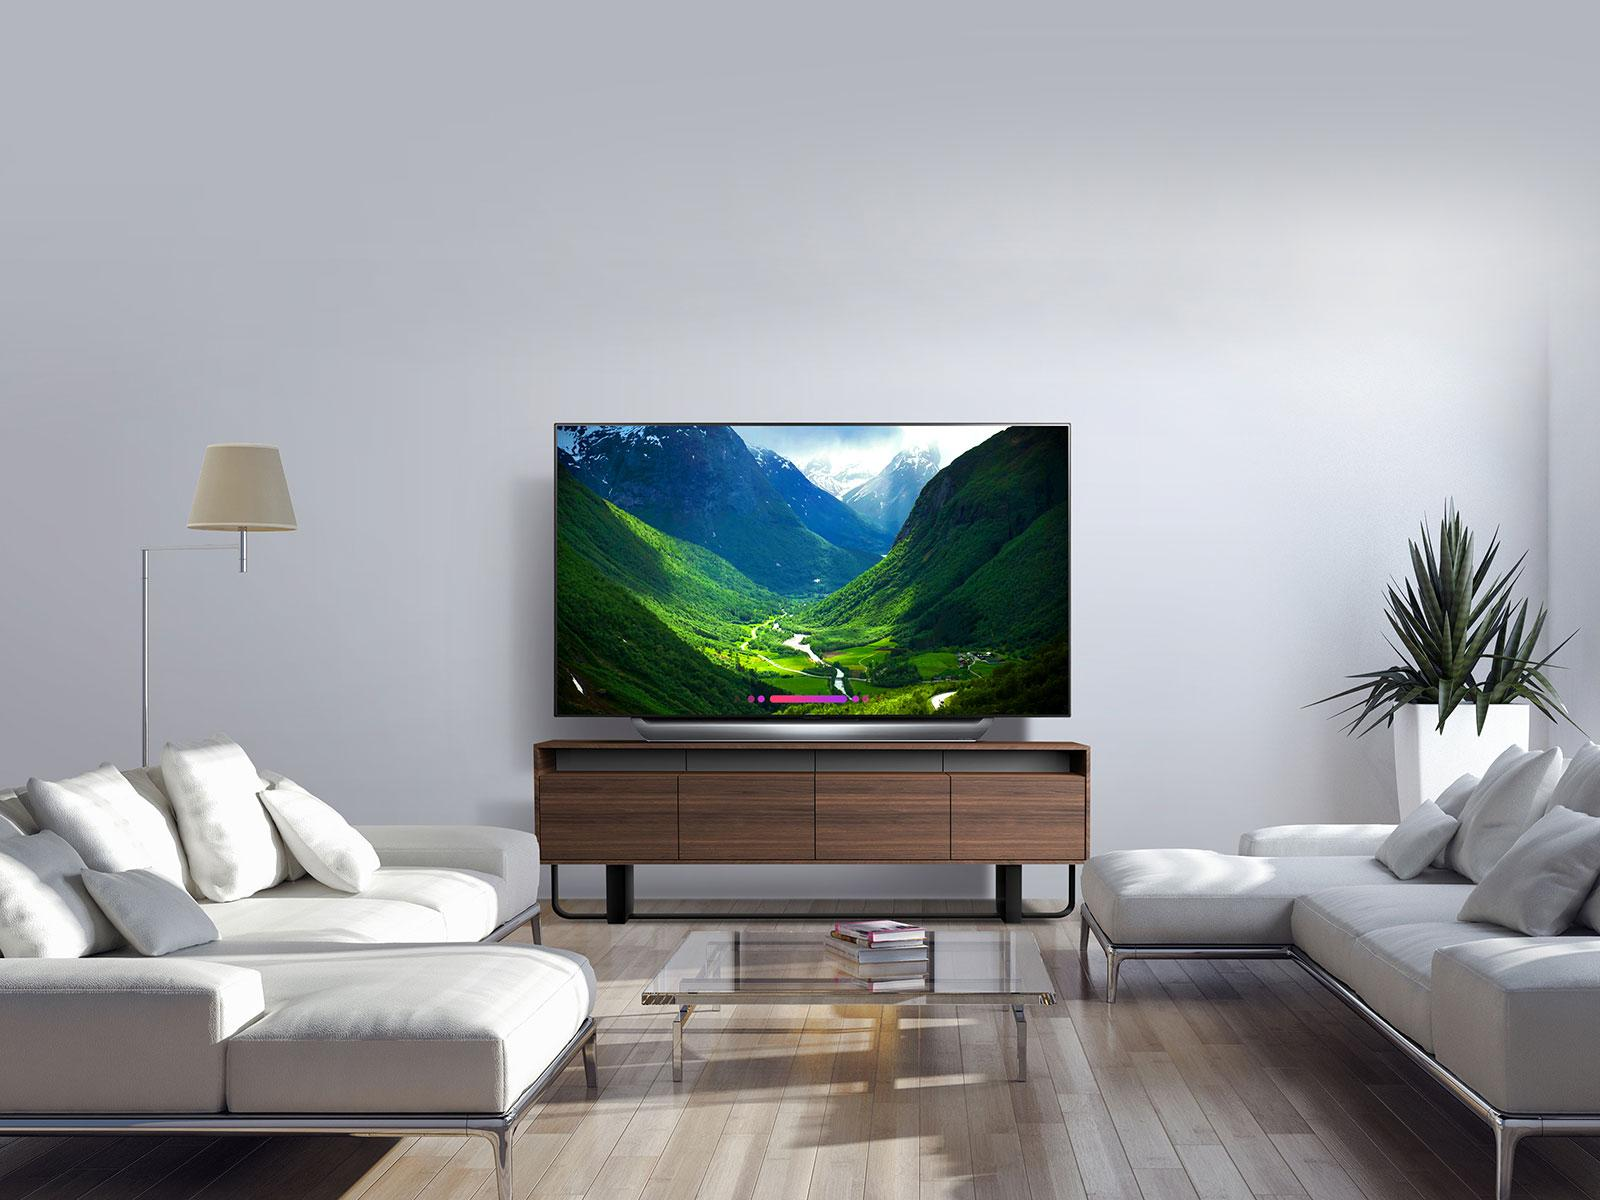 Lg Oled65c8pua Save Up To 800 00 For A Limited Time Lg Usa